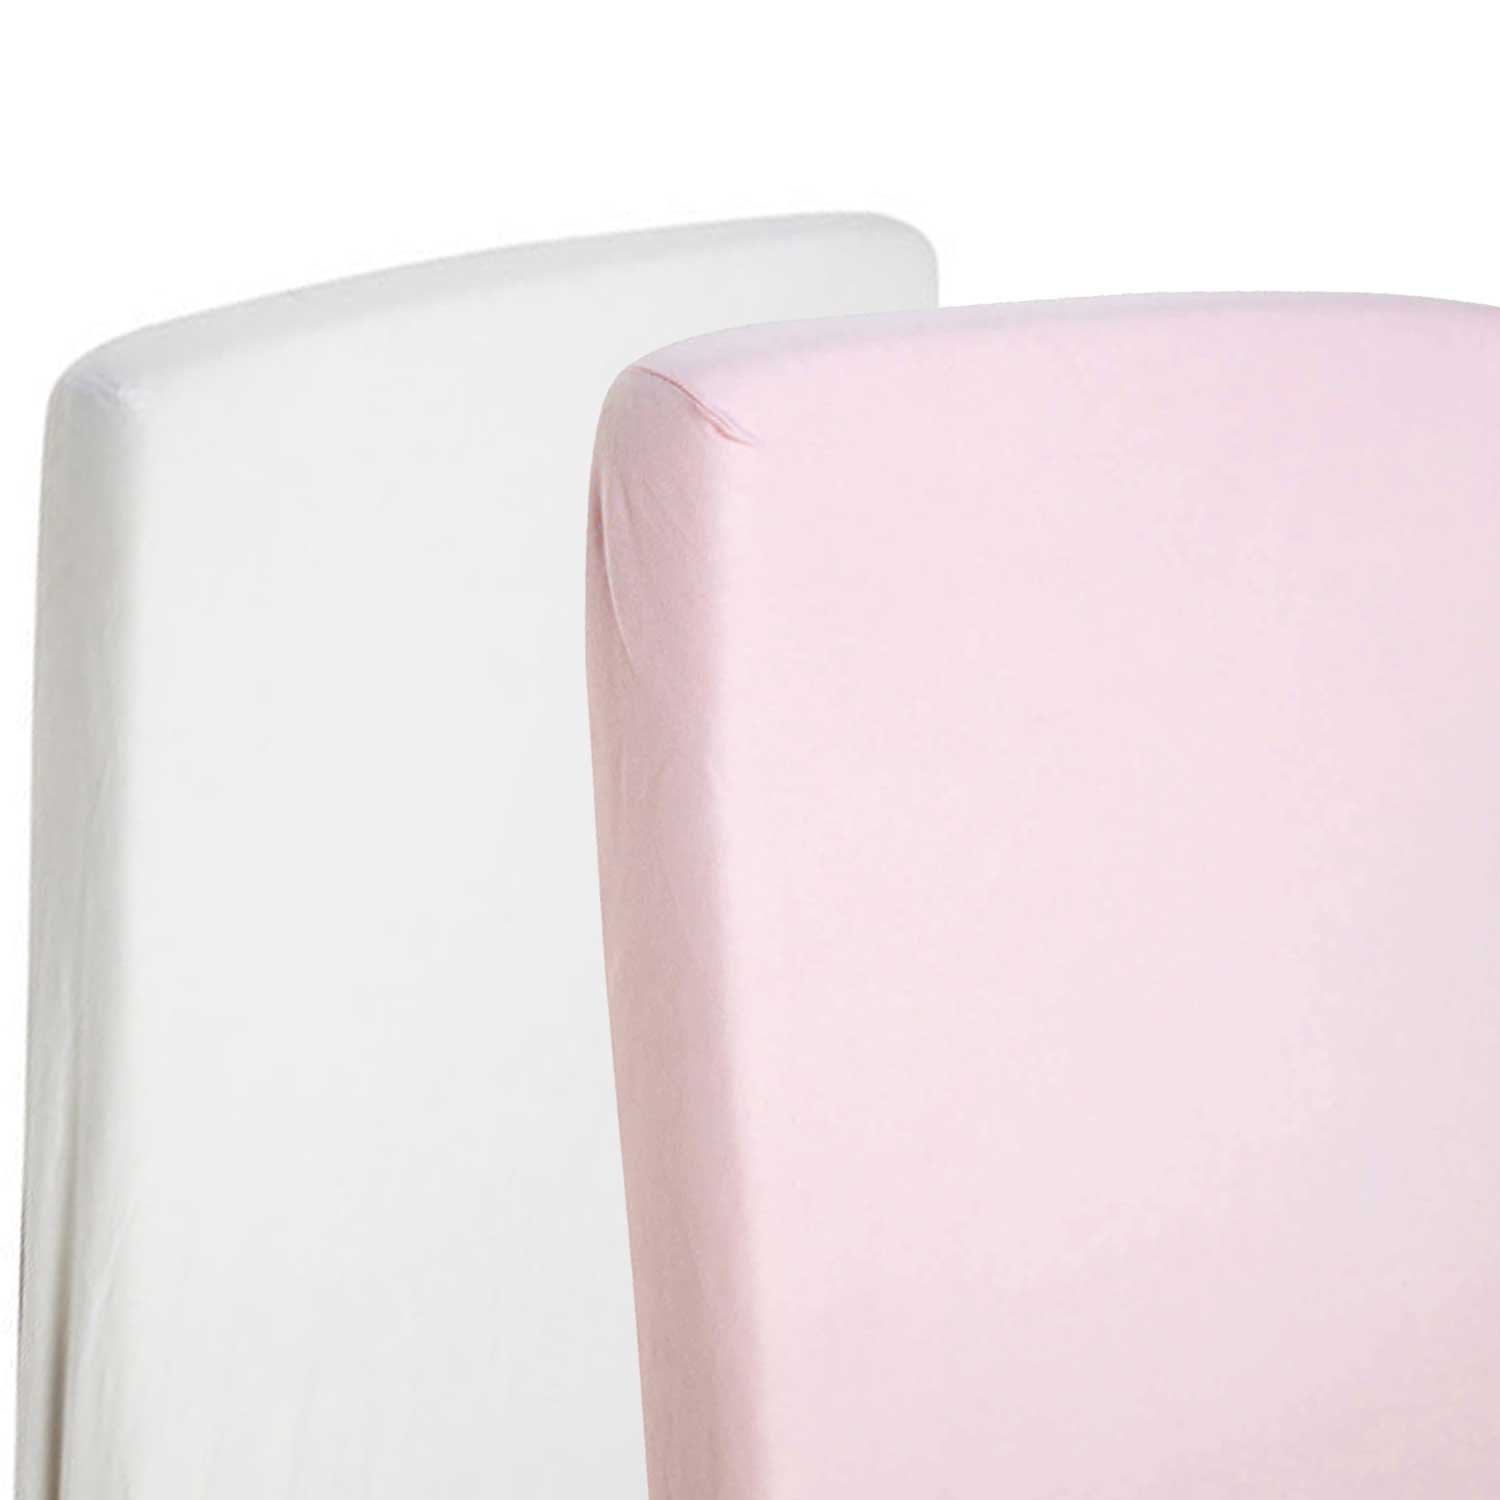 2x Fitted Sheets Compatible With Snuzpod Bedside Crib 100% Cotton - White/Pink-By For-Your-Little-One